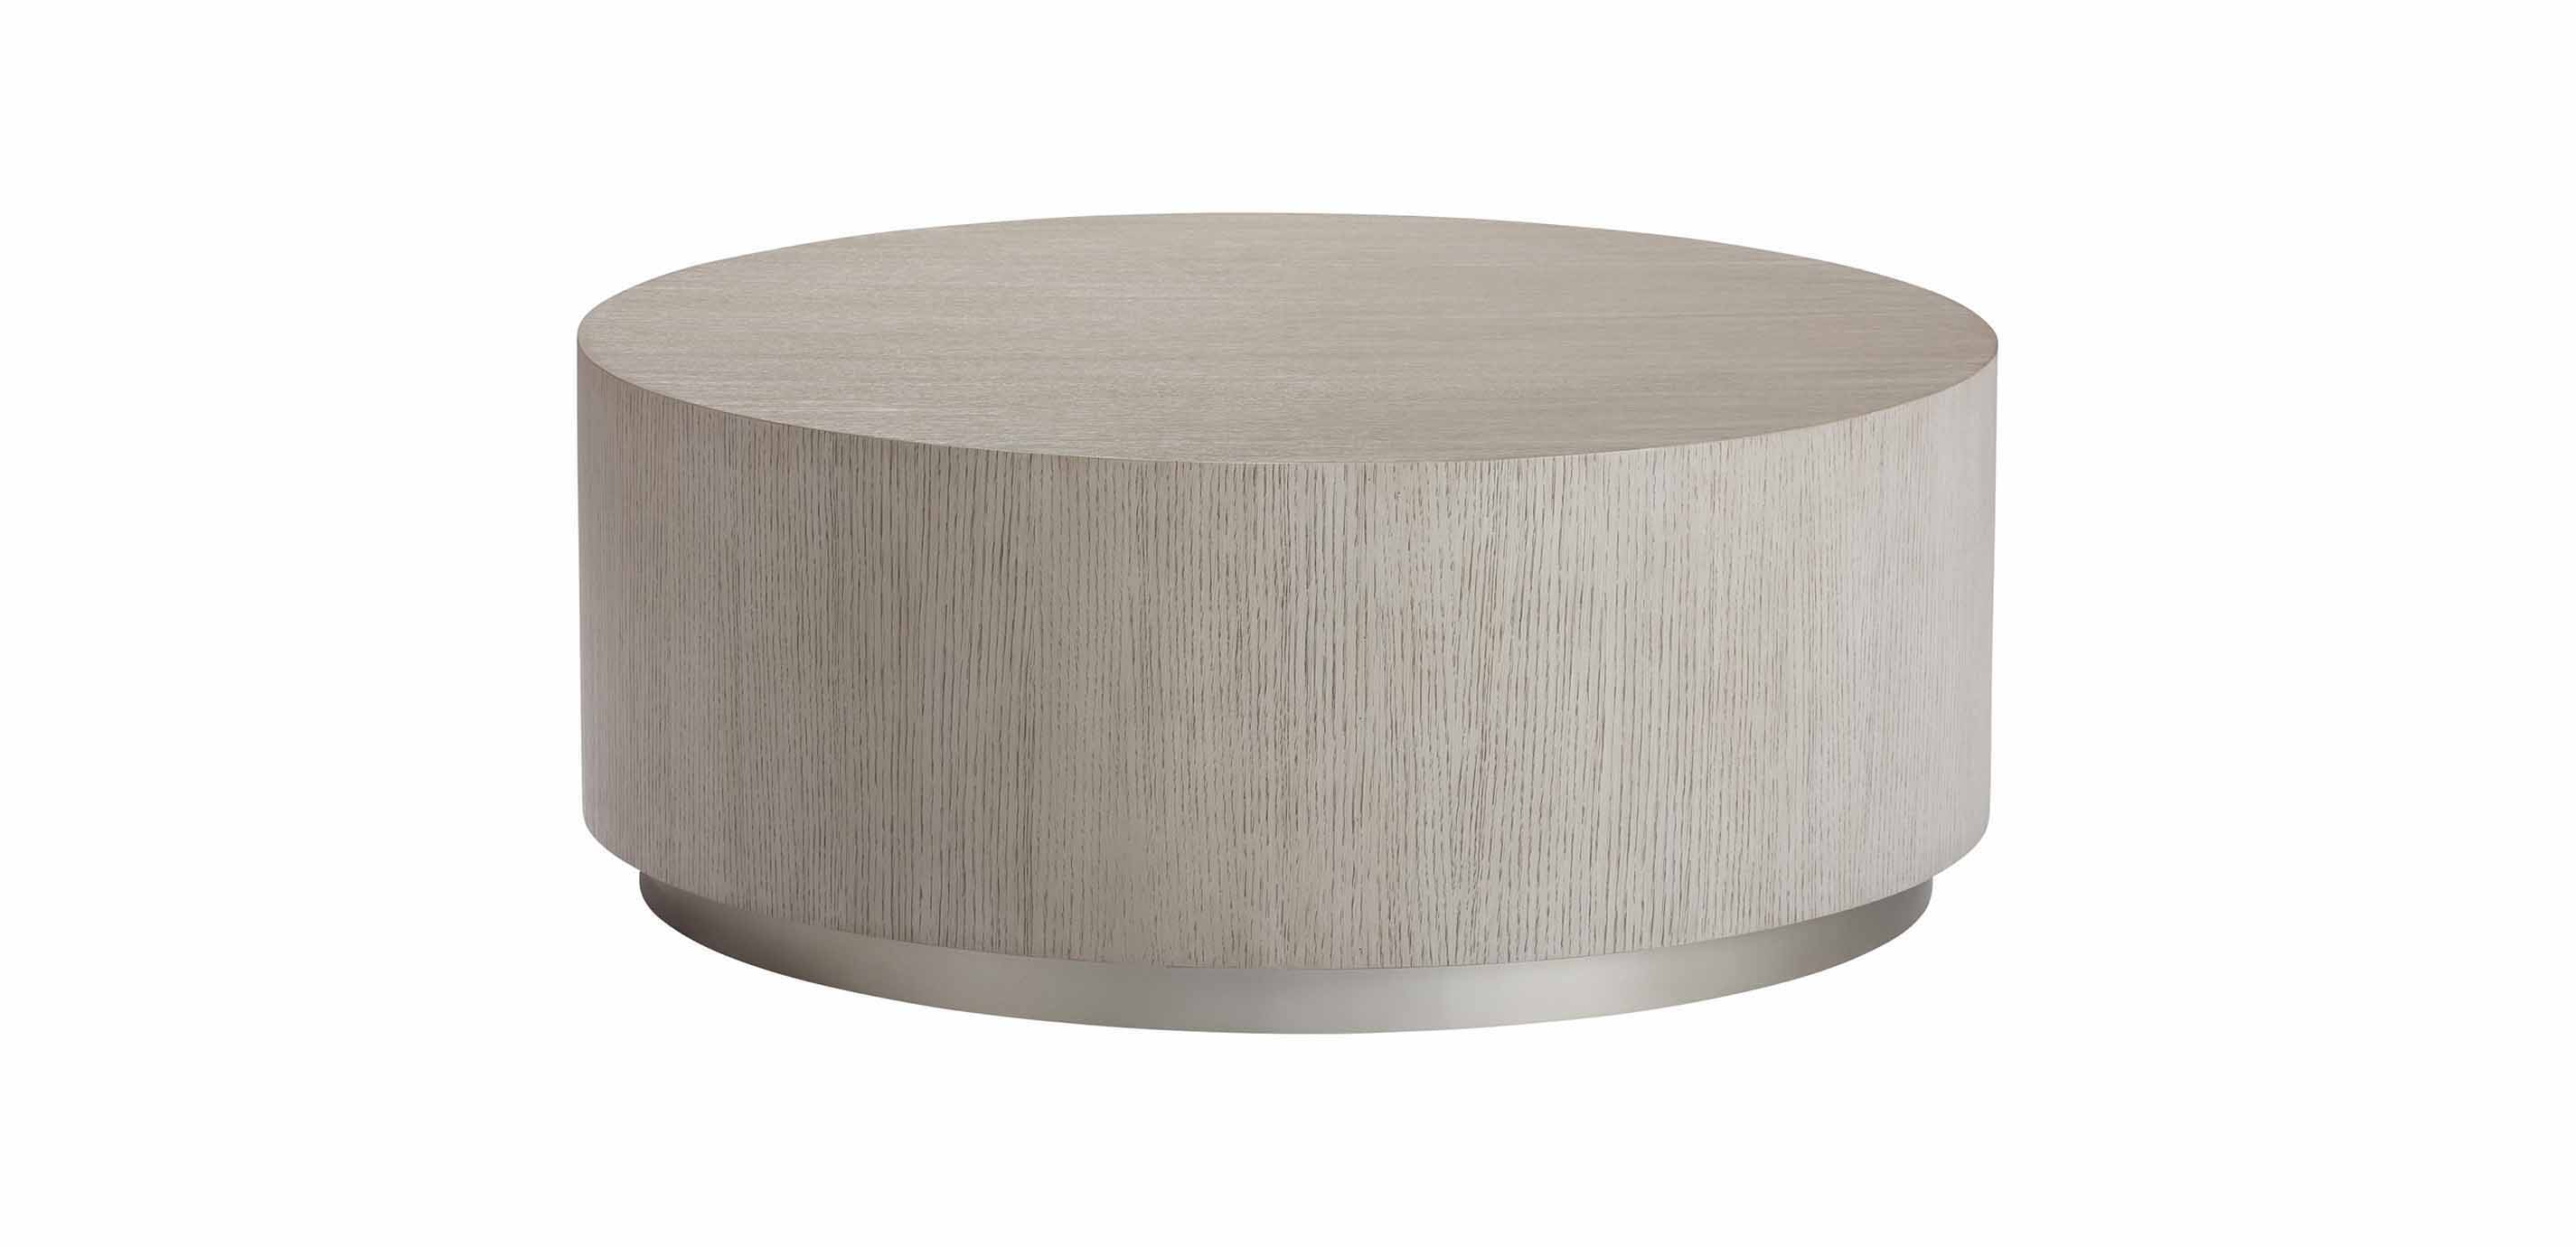 - Braemore Round Coffee Table Plinth Coffee Table Ethan Allen